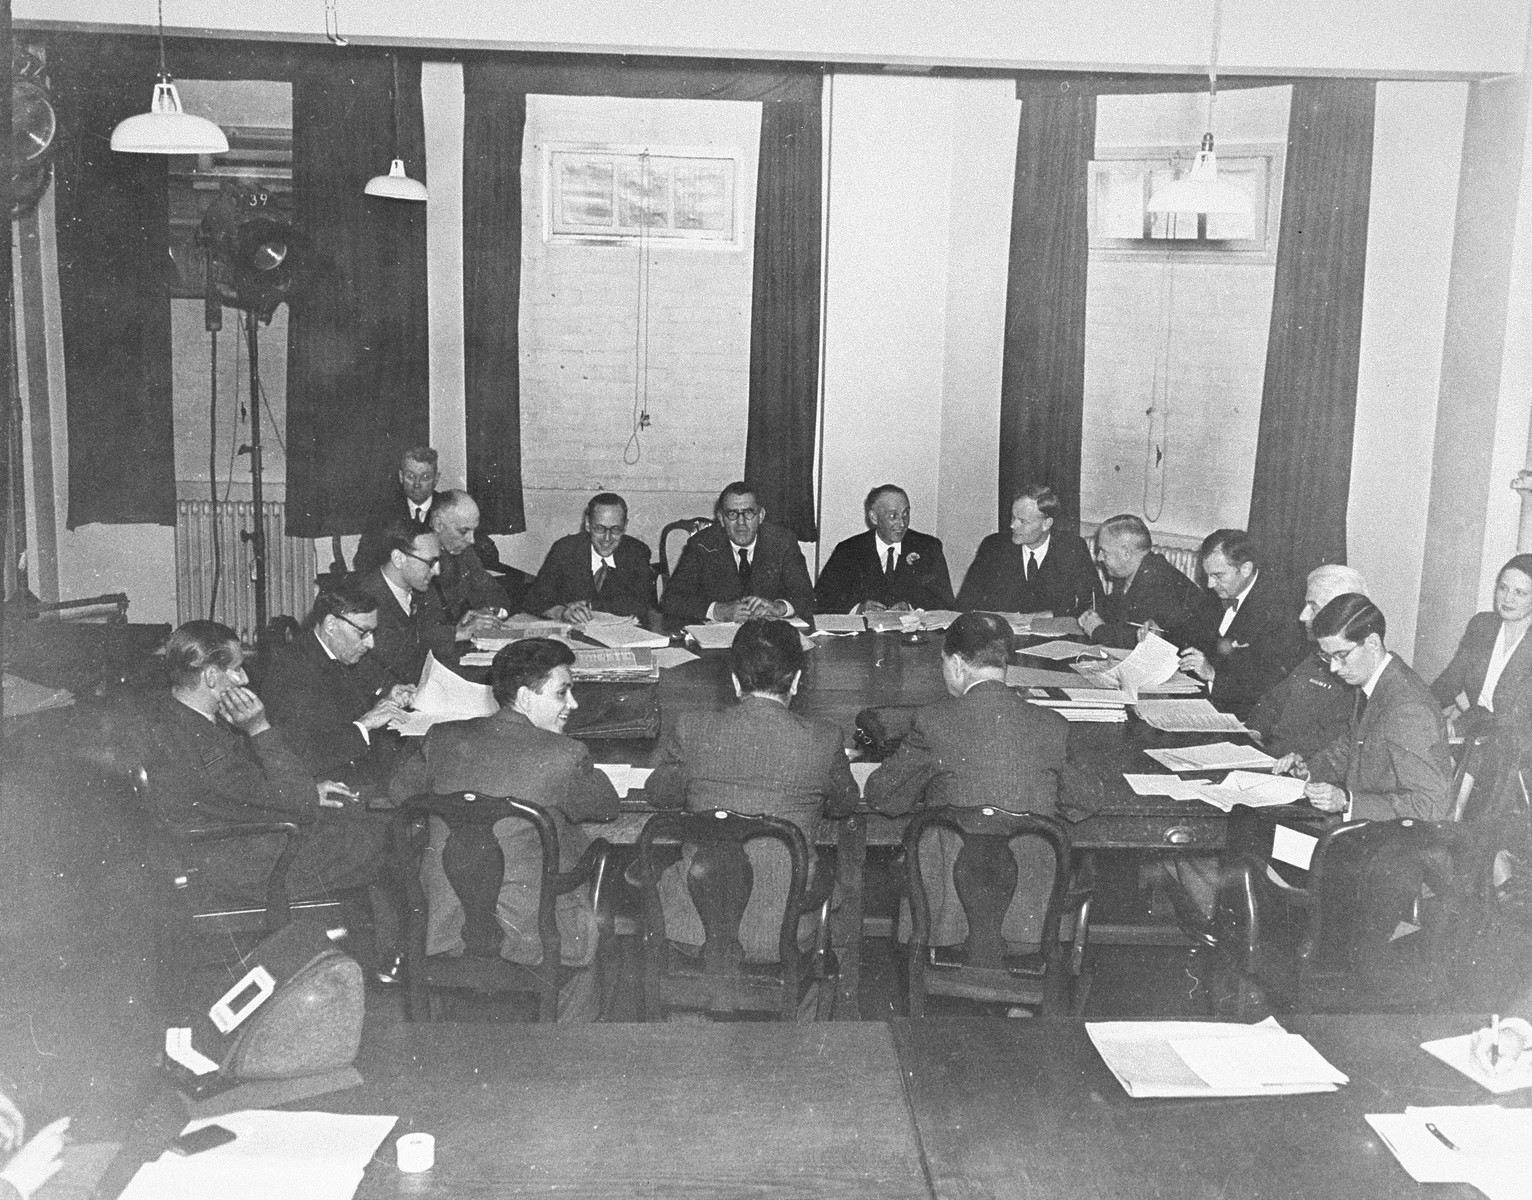 A meeting of the members of the War Crimes Executive Committee, the body which worked out the Allied agreement to create the International Military Tribunal to prosecute German war criminals at Nuremberg.